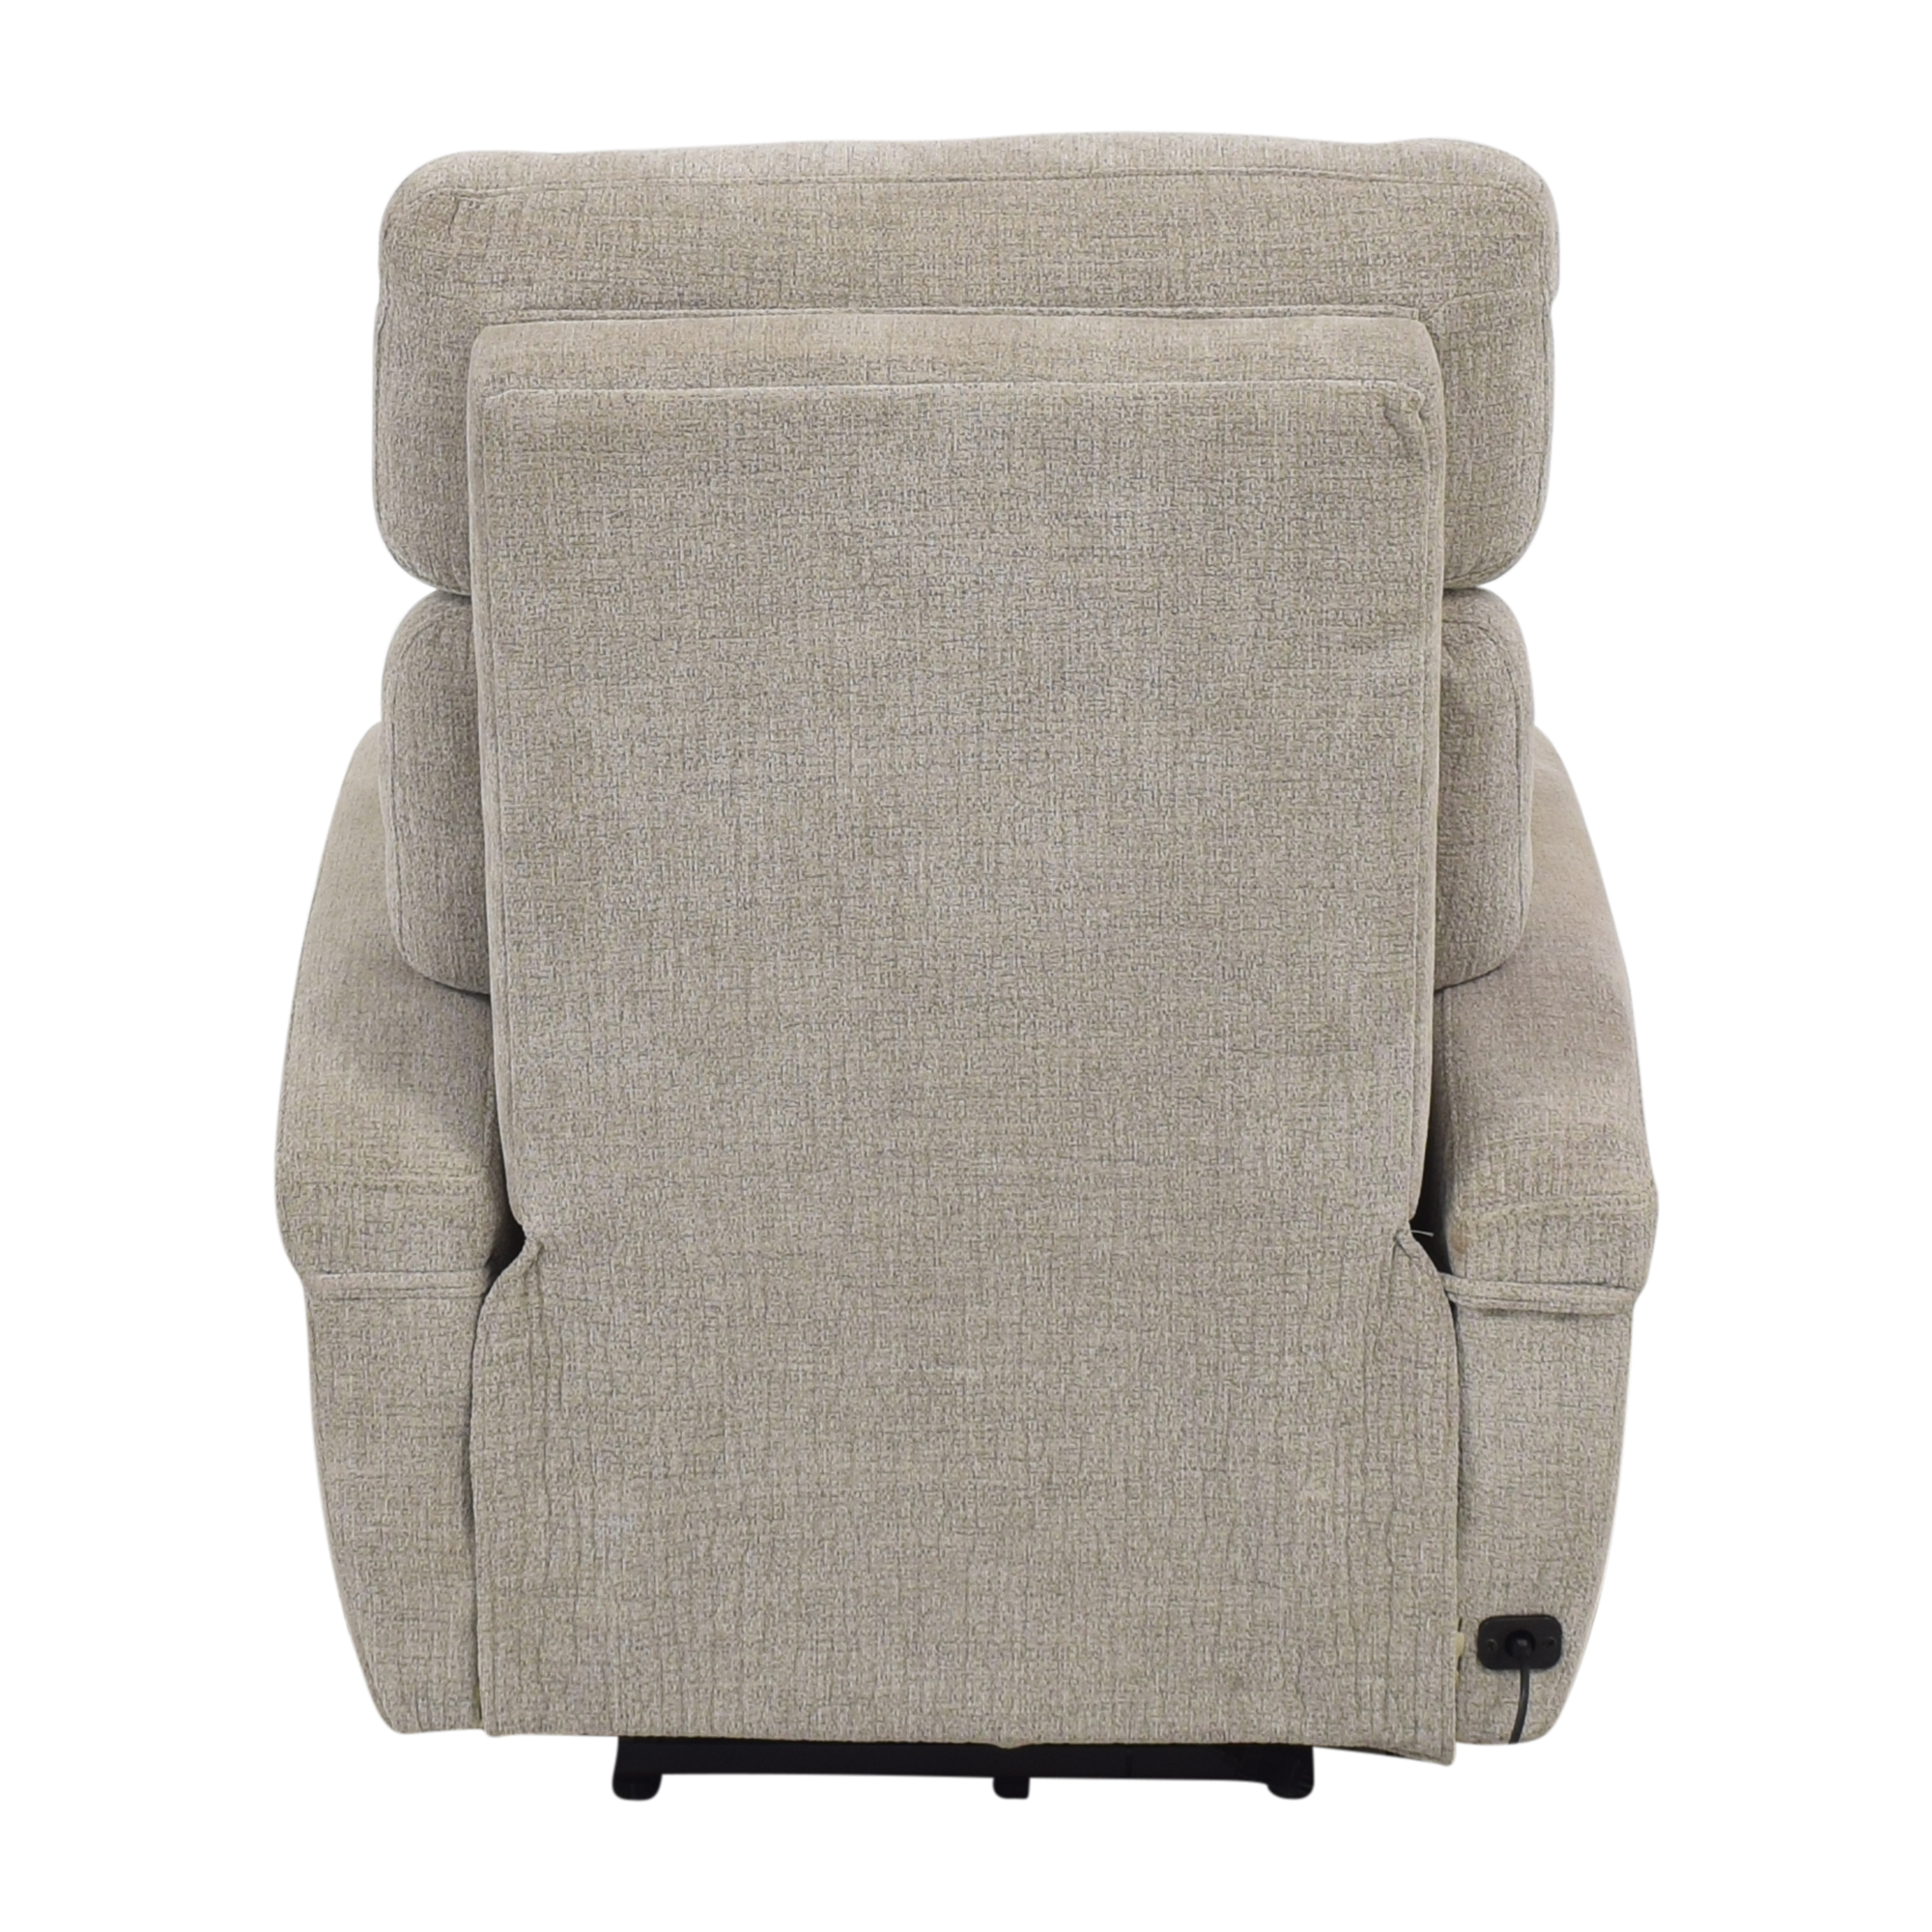 Macy's Macy's Stellarae Fabric Power Recliner coupon